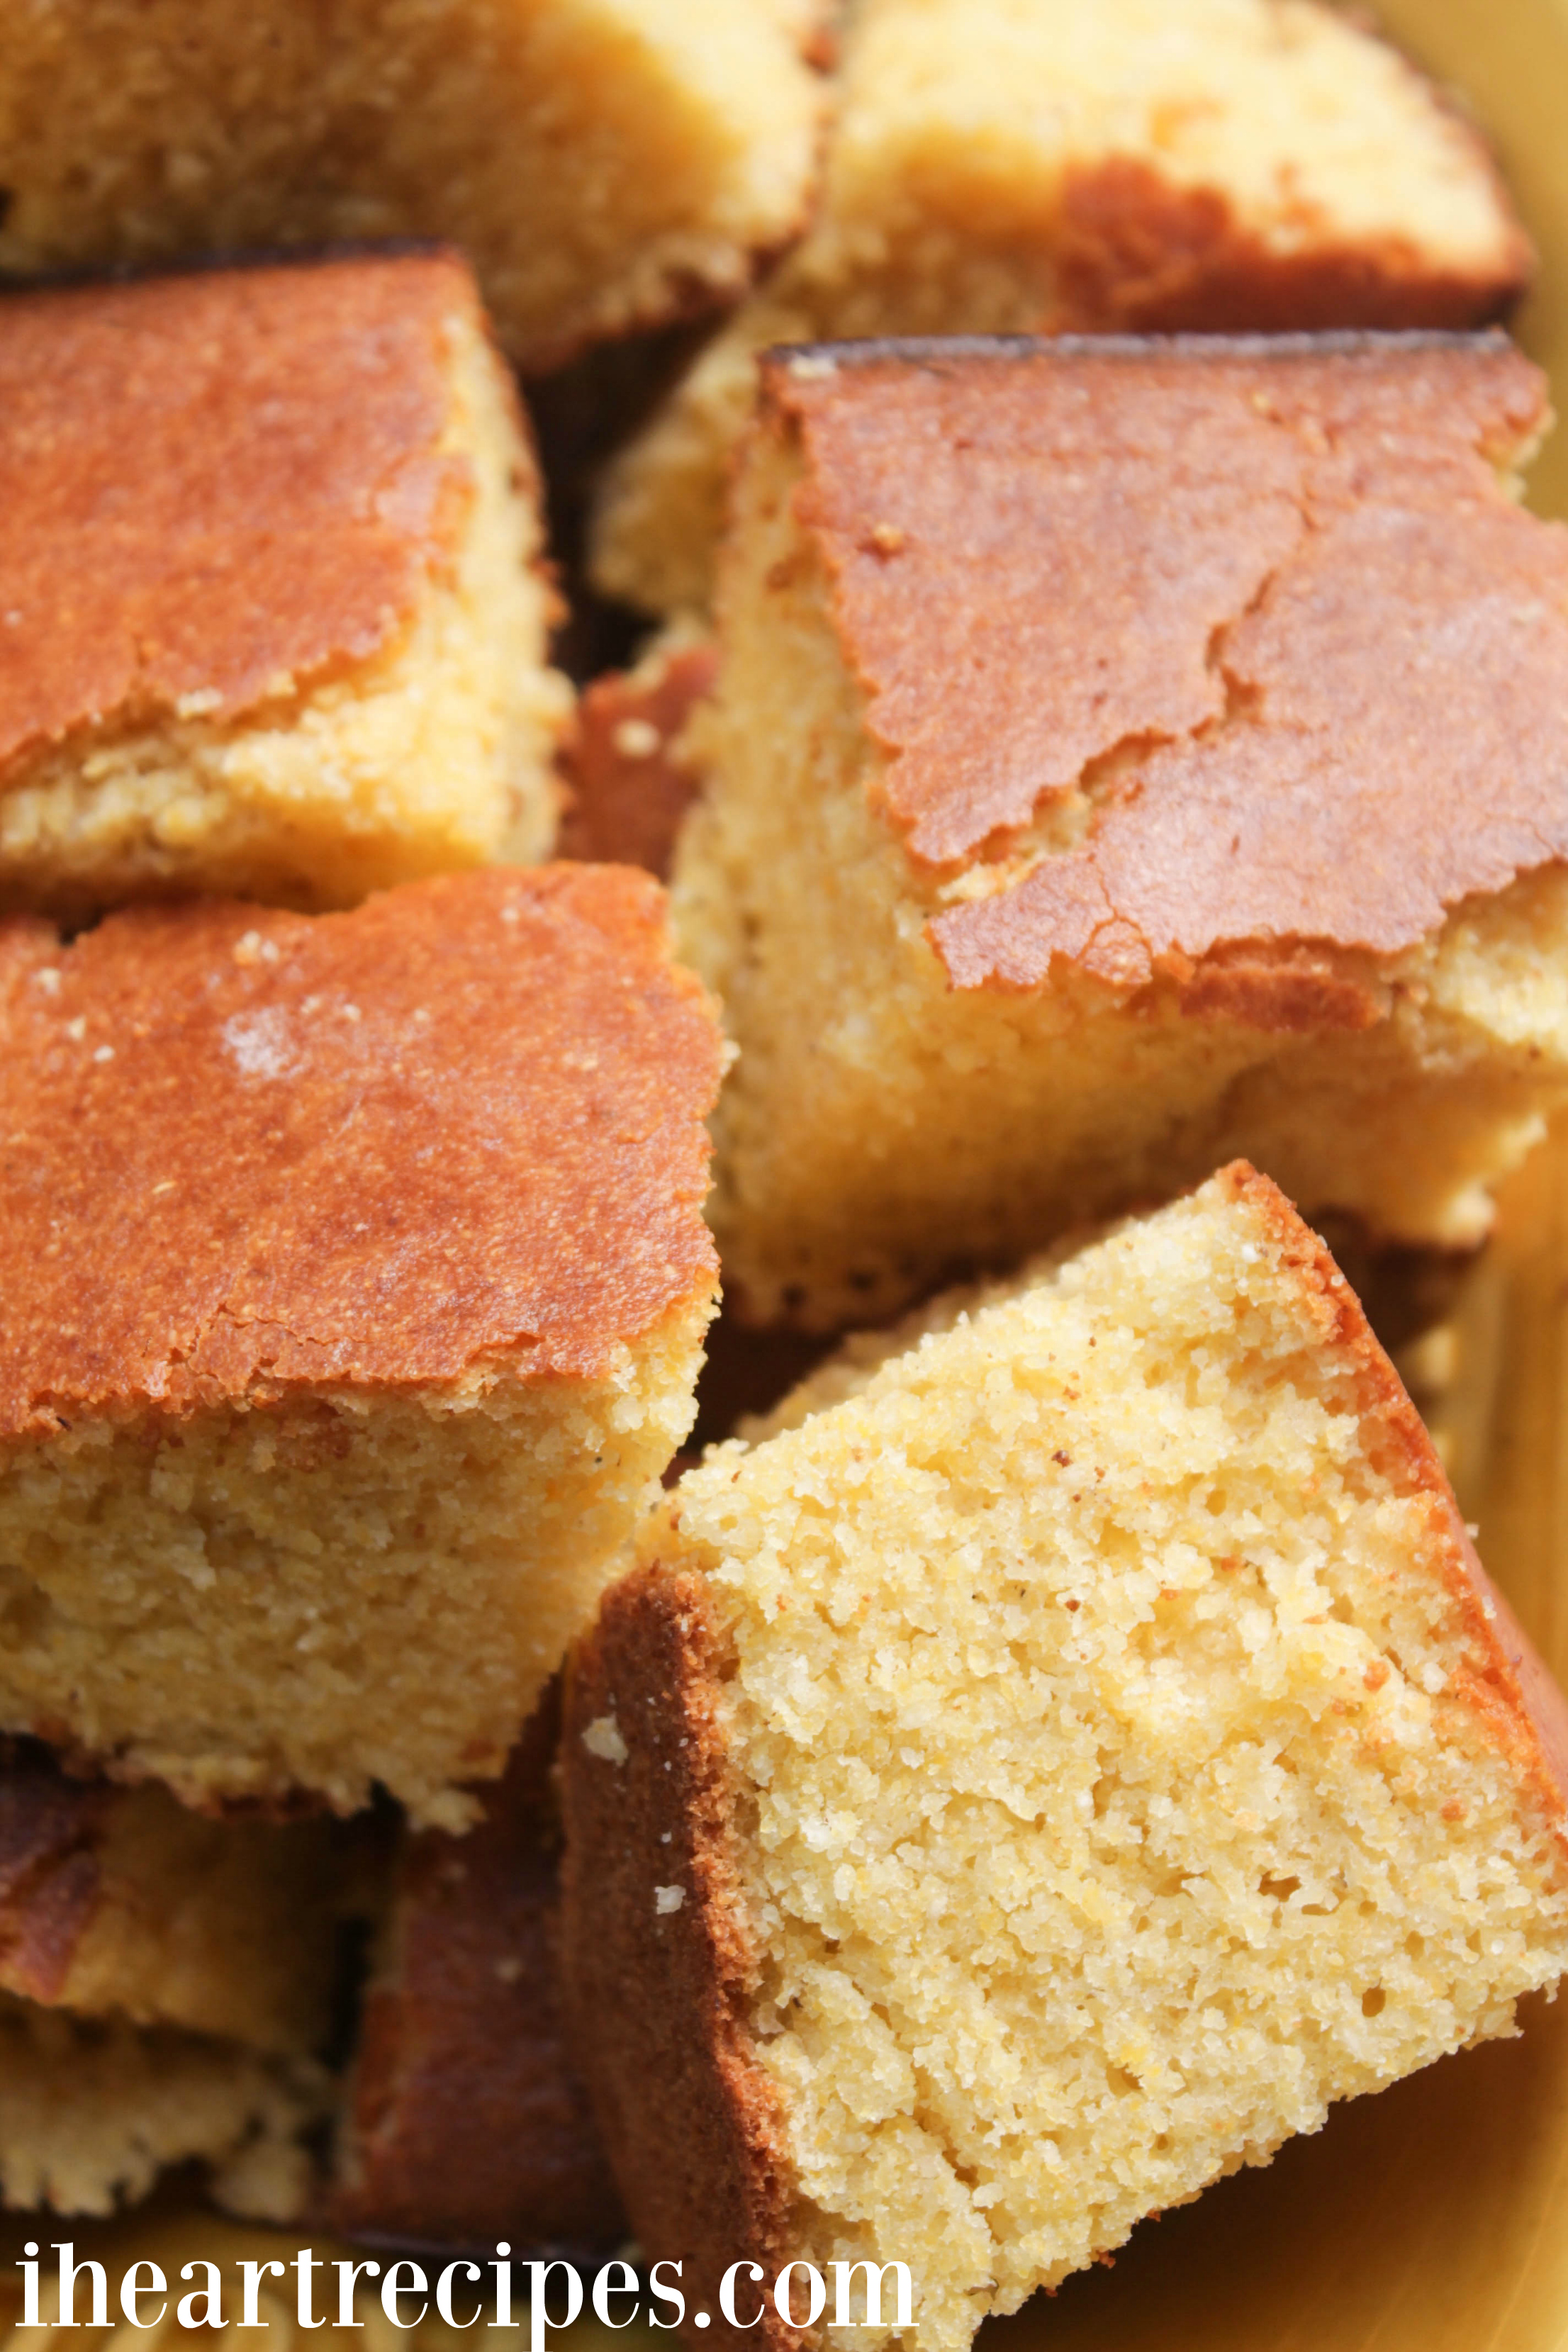 Sweet and delicious cornbread with a golden brown crust